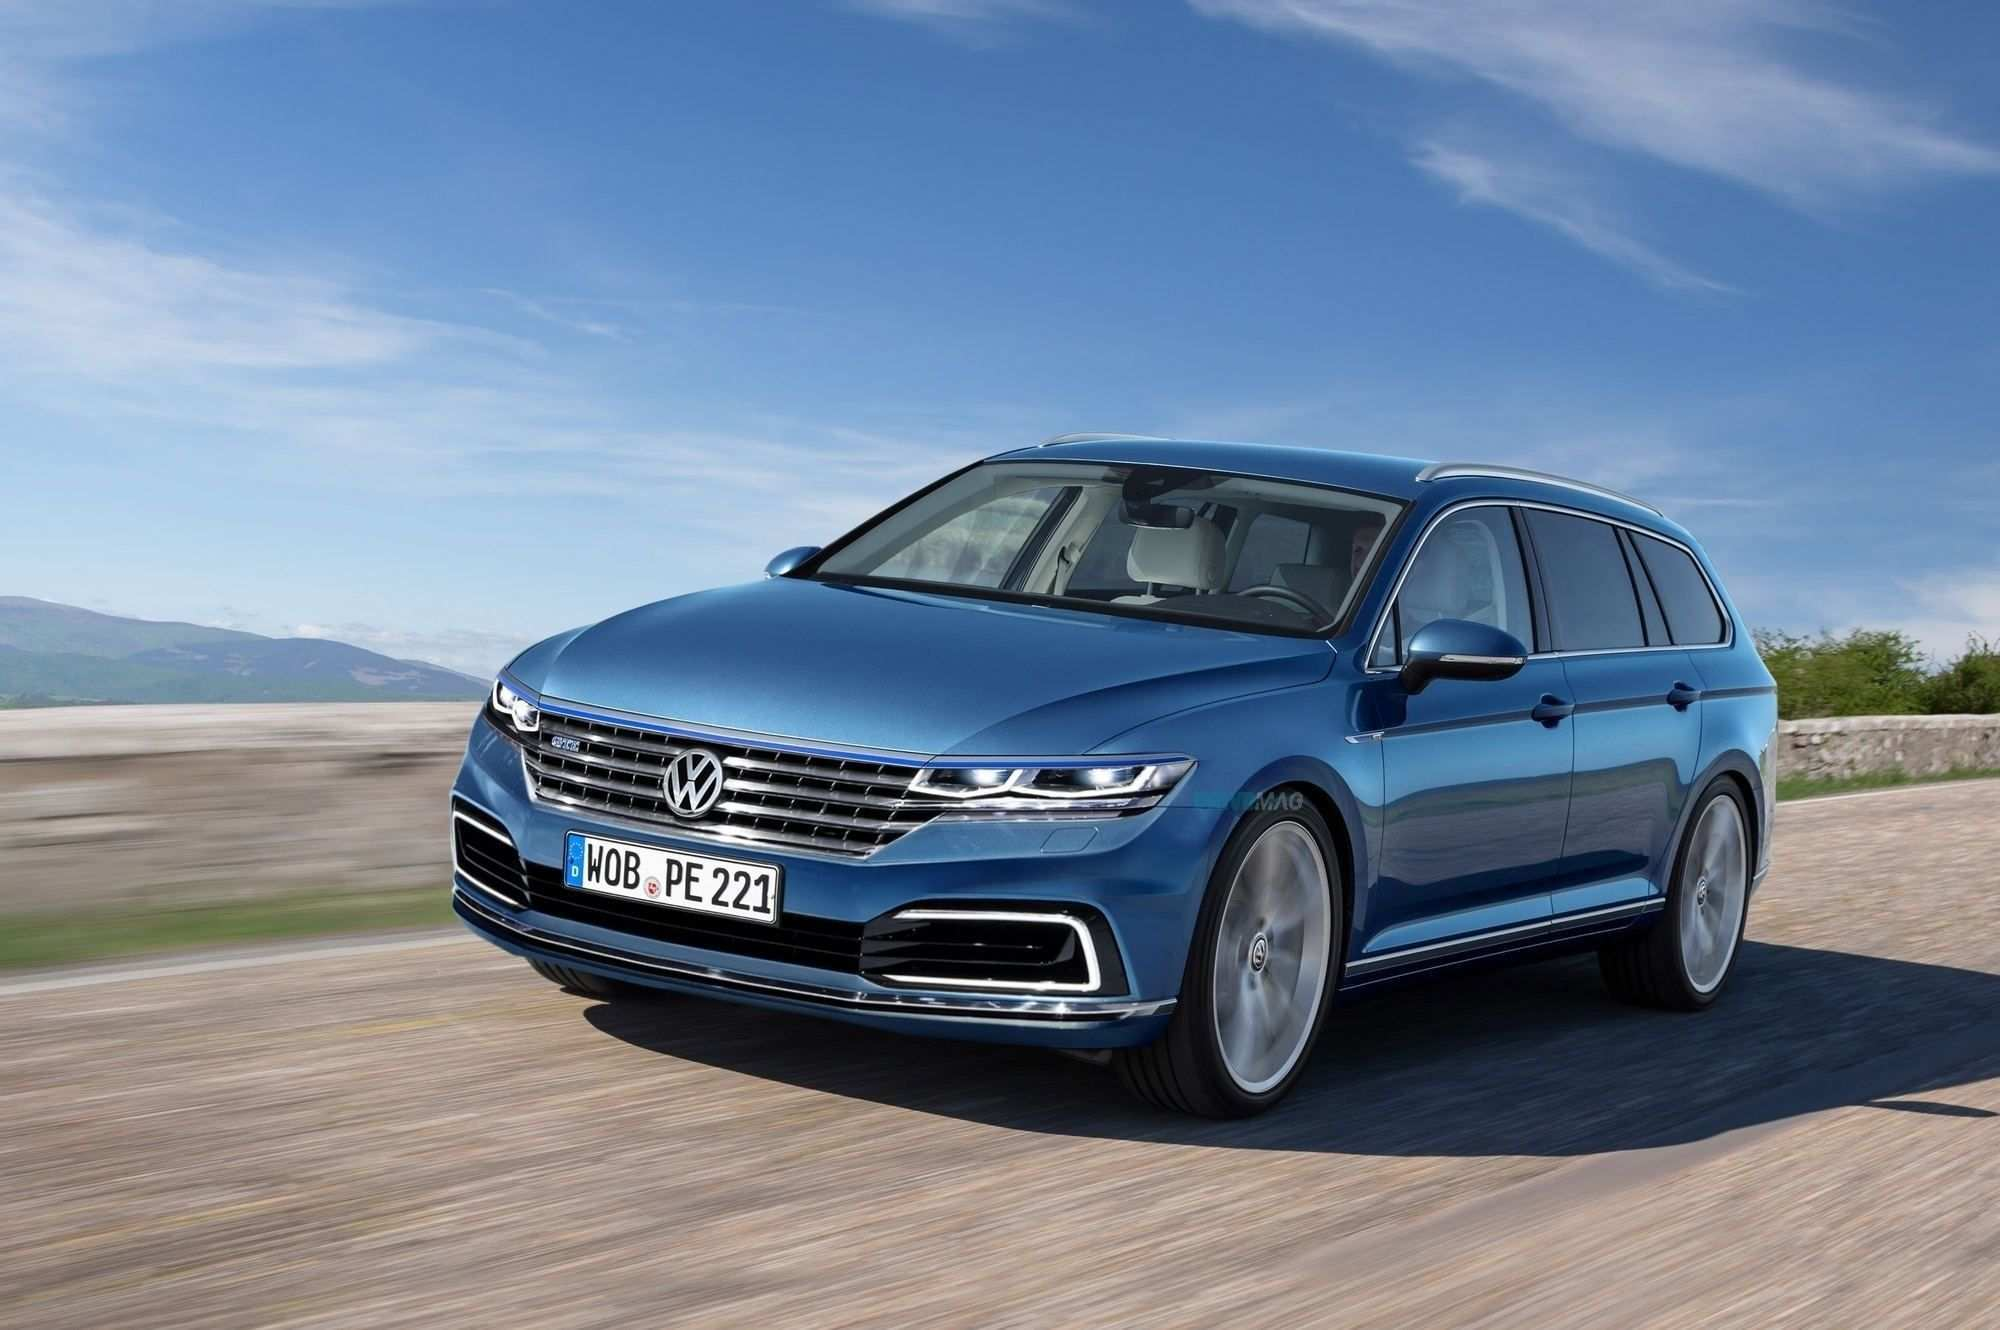 70 The The 2019 Volkswagen Wagon First Drive Exterior for The 2019 Volkswagen Wagon First Drive